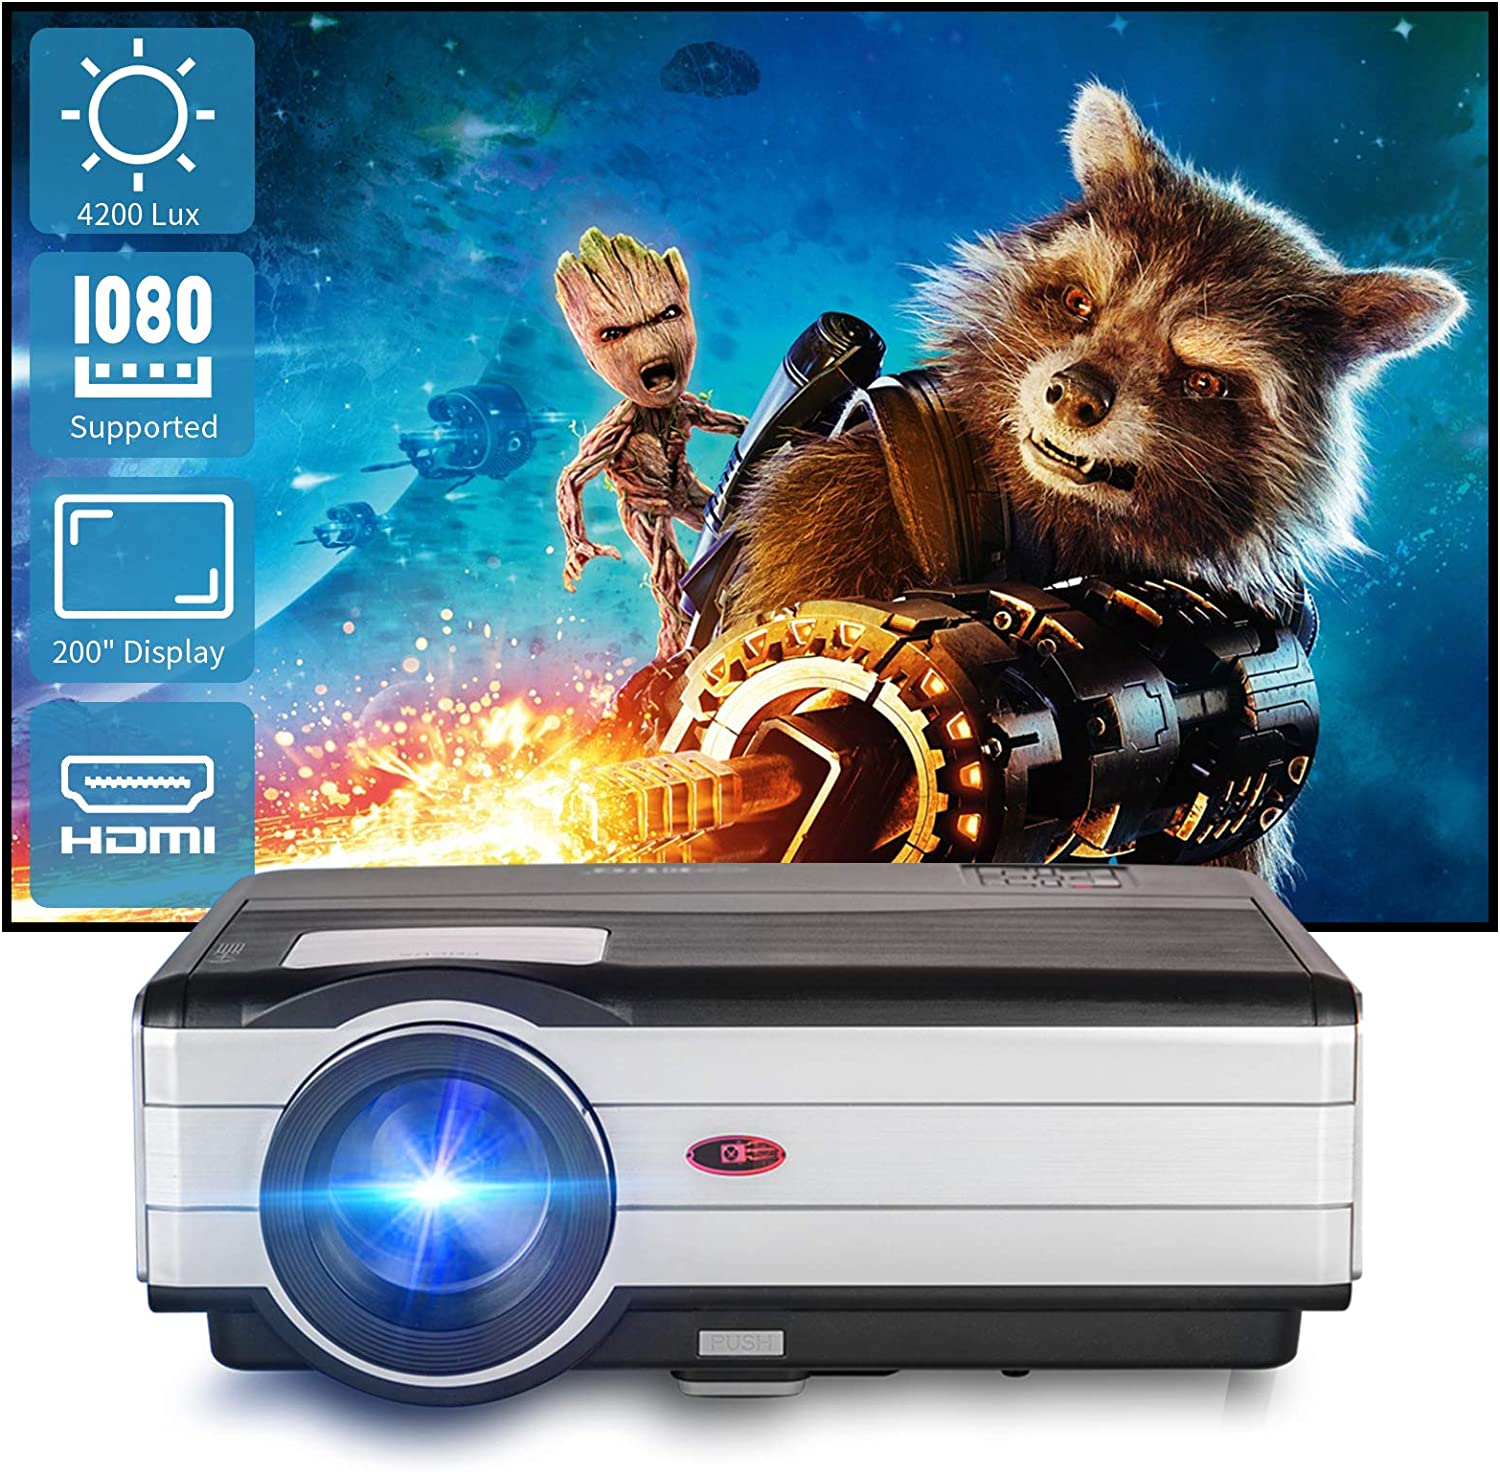 Full HD 1080p supported Video Projector for Home and Outdoor Entertainment with Max 200inch Huge Screen Display HIFI Speaker Home Cinema Endurable Projector Compatible with TV Stick/PS4/HDMI/USB/Phone